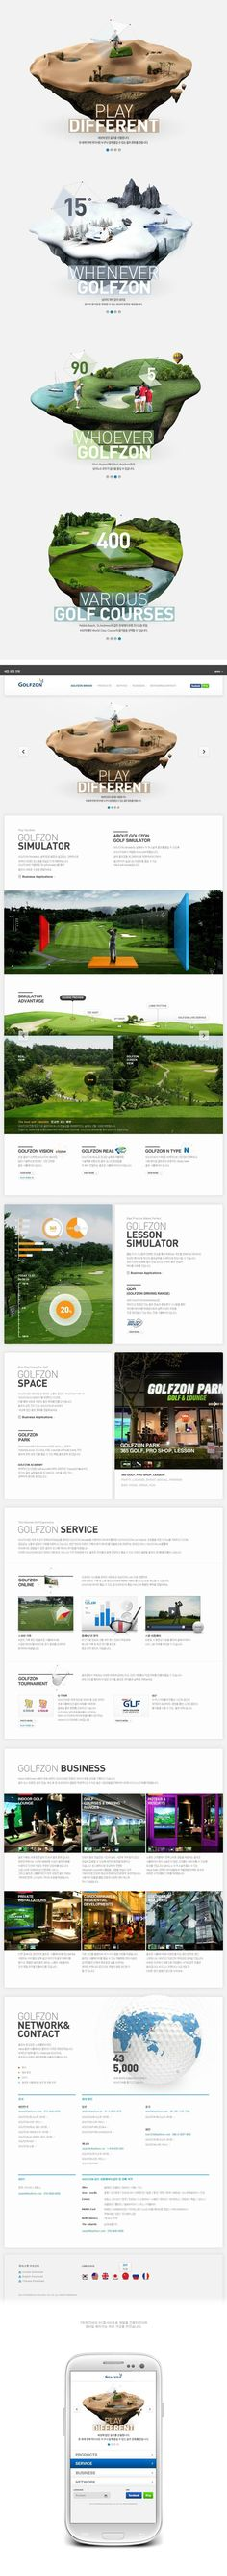 GolfZone Global Website Design by Plus X , via Behance | #webdesign #it #web #design #layout #userinterface #website #webdesign < repinned by www.BlickeDeeler.de | Take a look at www.WebsiteDesign-Hamburg.de